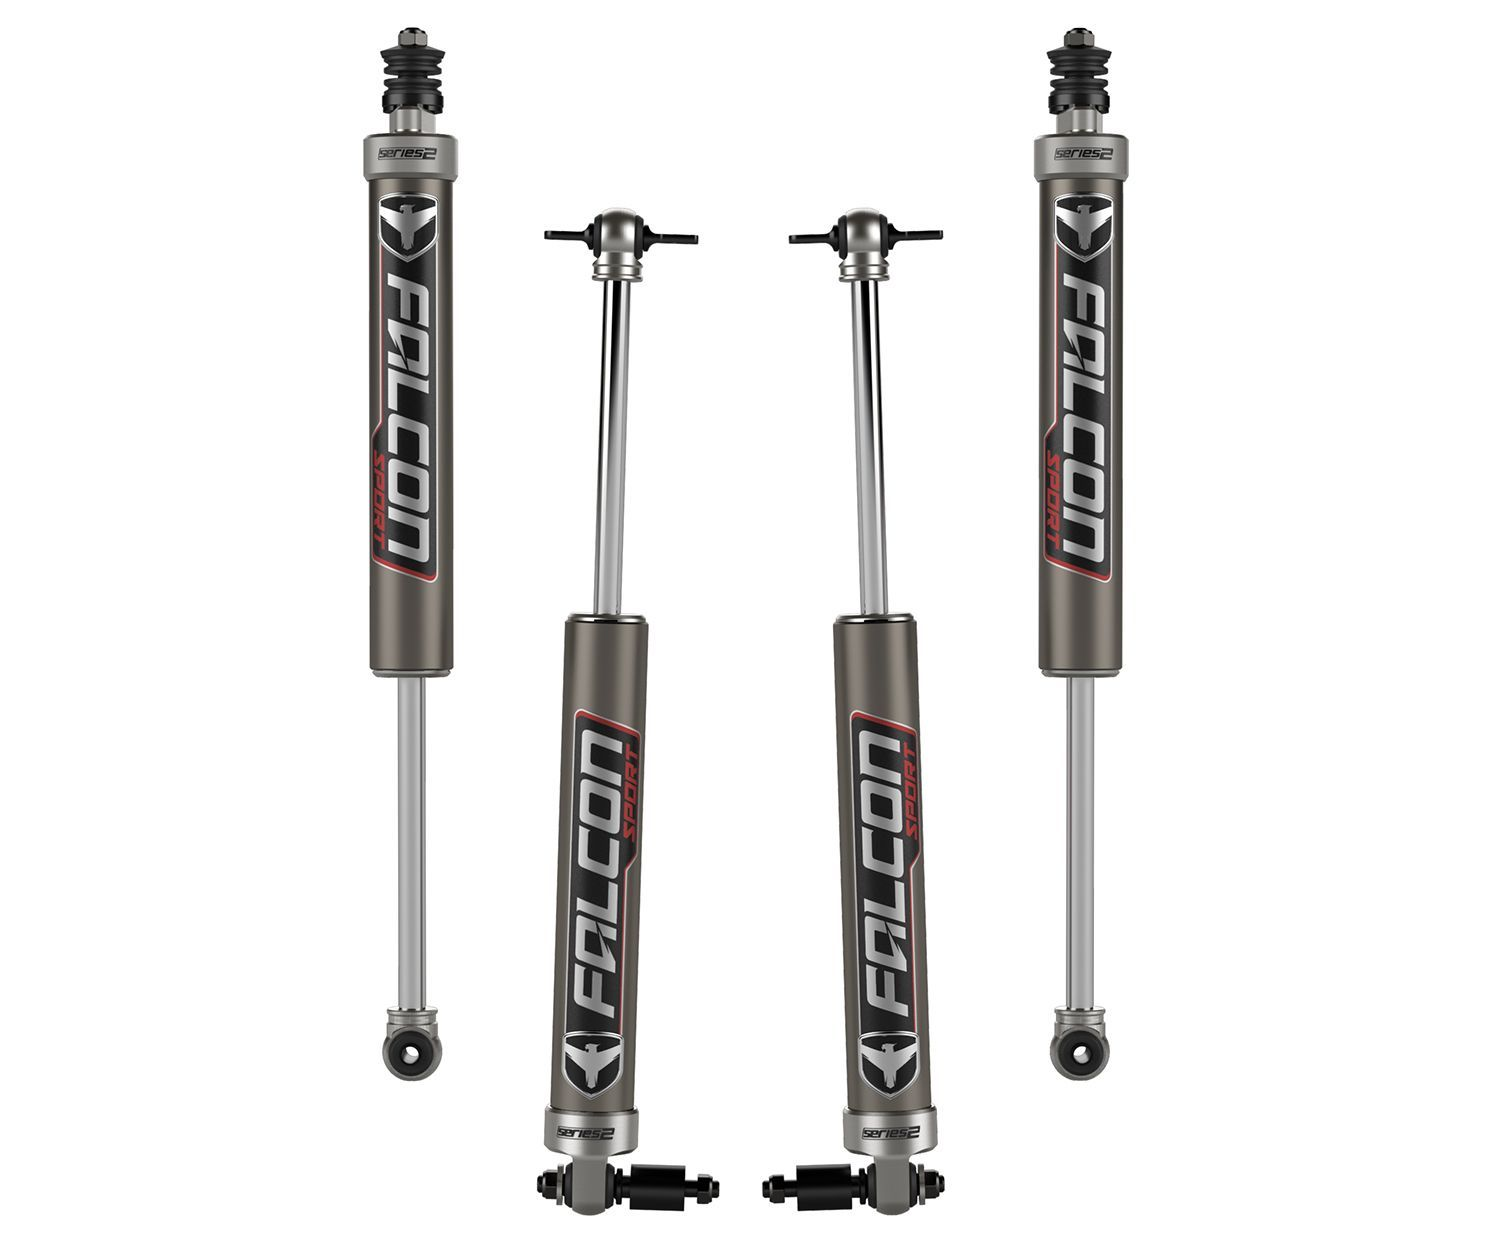 "Teraflex 1.5-2"" Lift Falcon Series 2.1 Sport Monotube Shock Absorber Kit - All 4 for Wrangler JK"